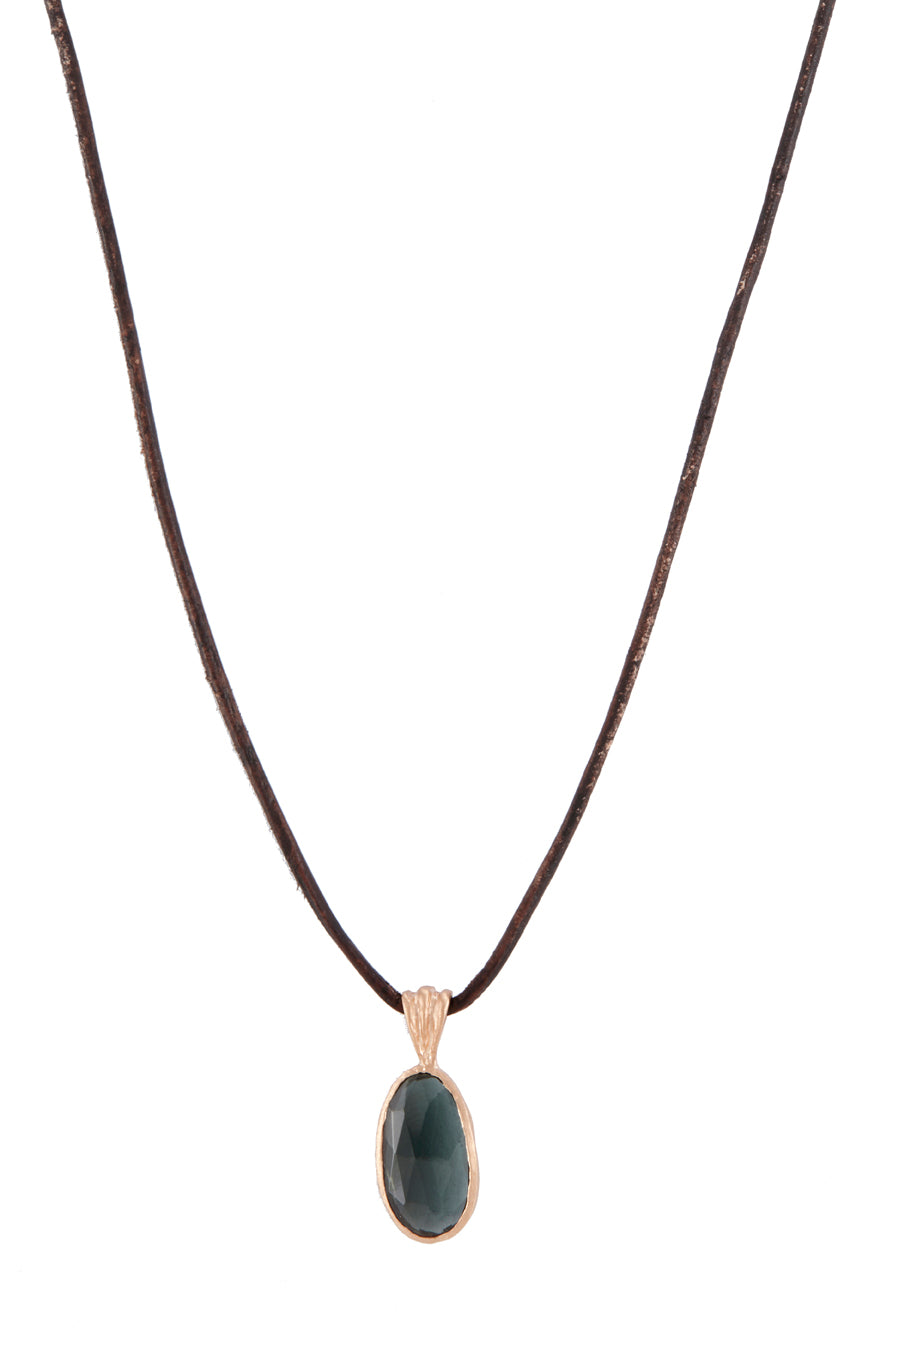 Umi Cerulean Tourmaline Necklace